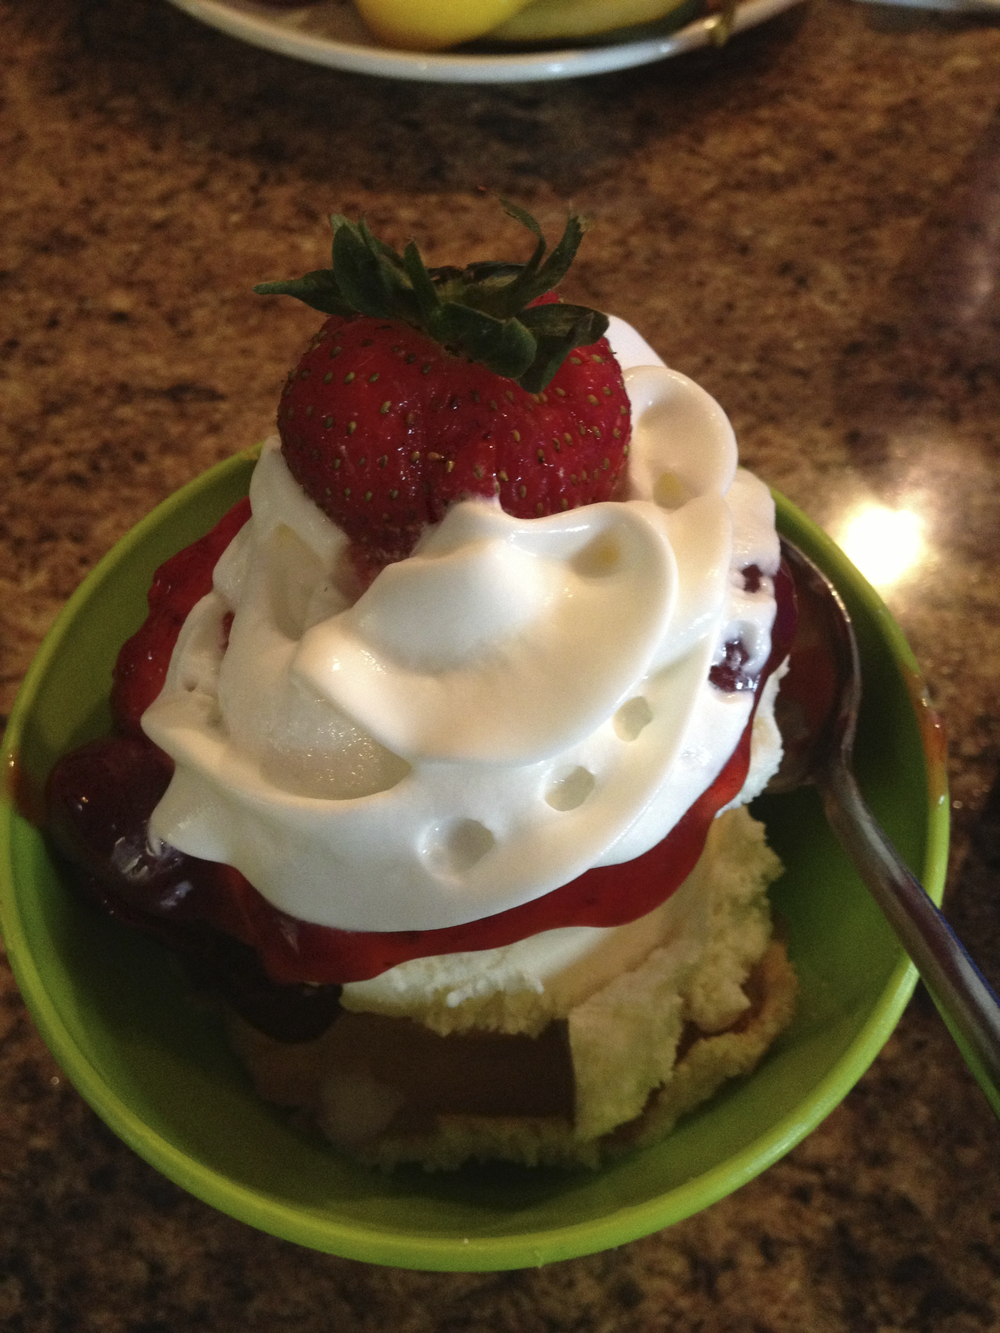 Strawberry shortcake in Charlottesville, Virginia